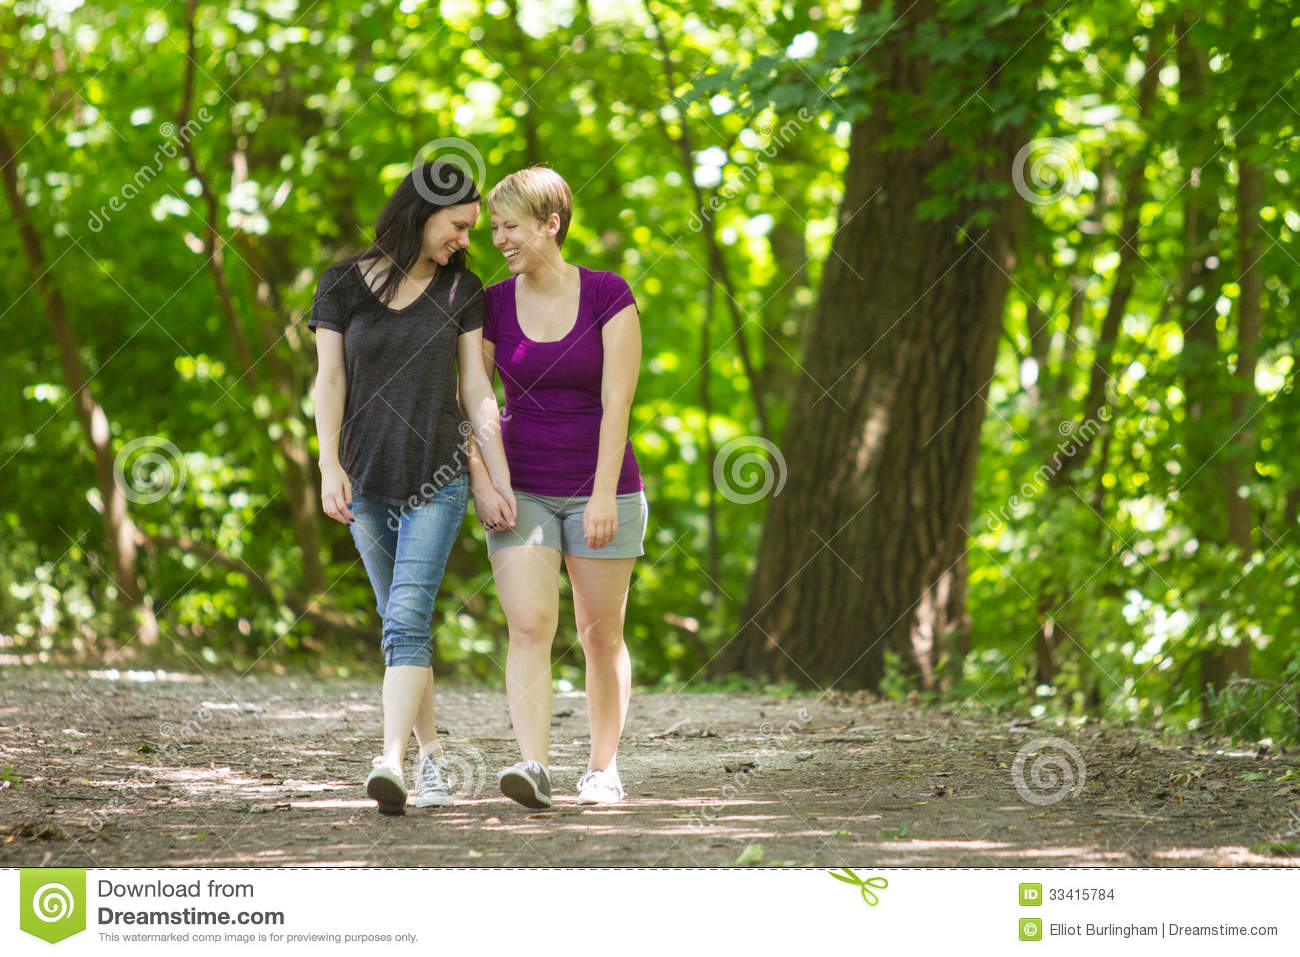 Two girlfriends walking in forest and meeting a guy - 2 part 1